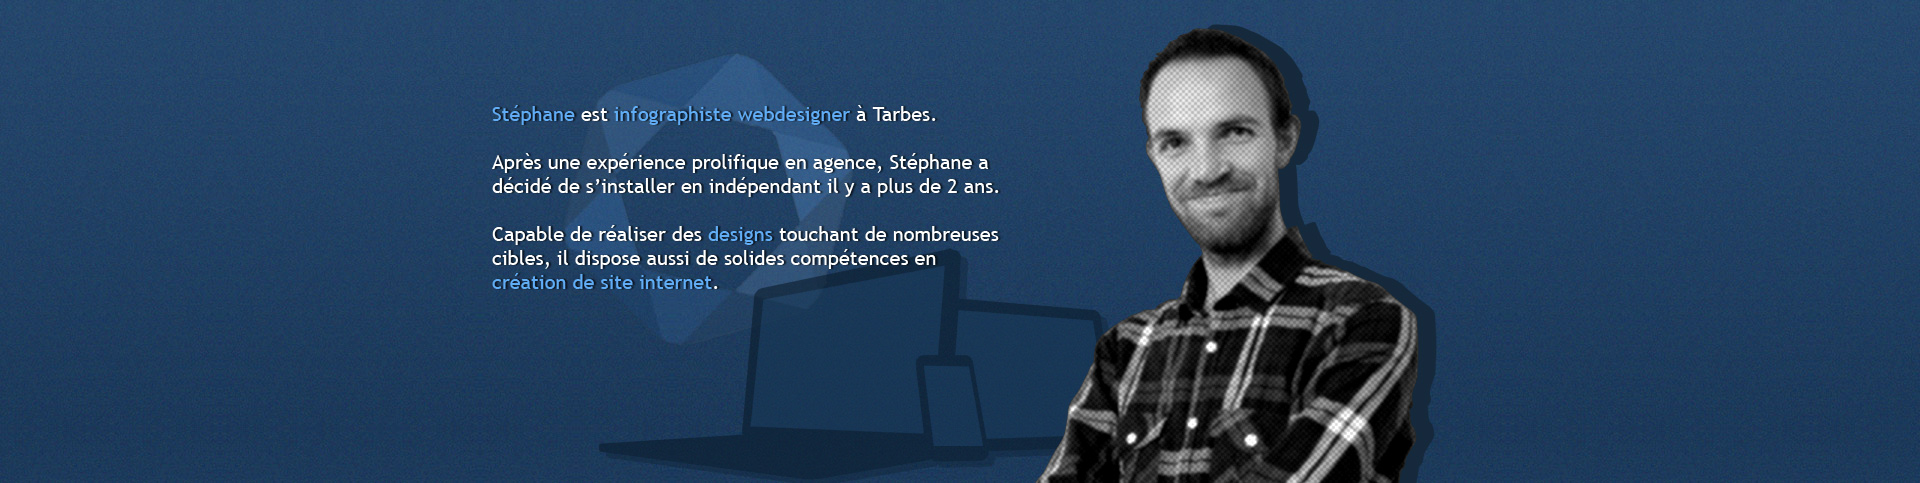 stephane-graphiste-creatif1